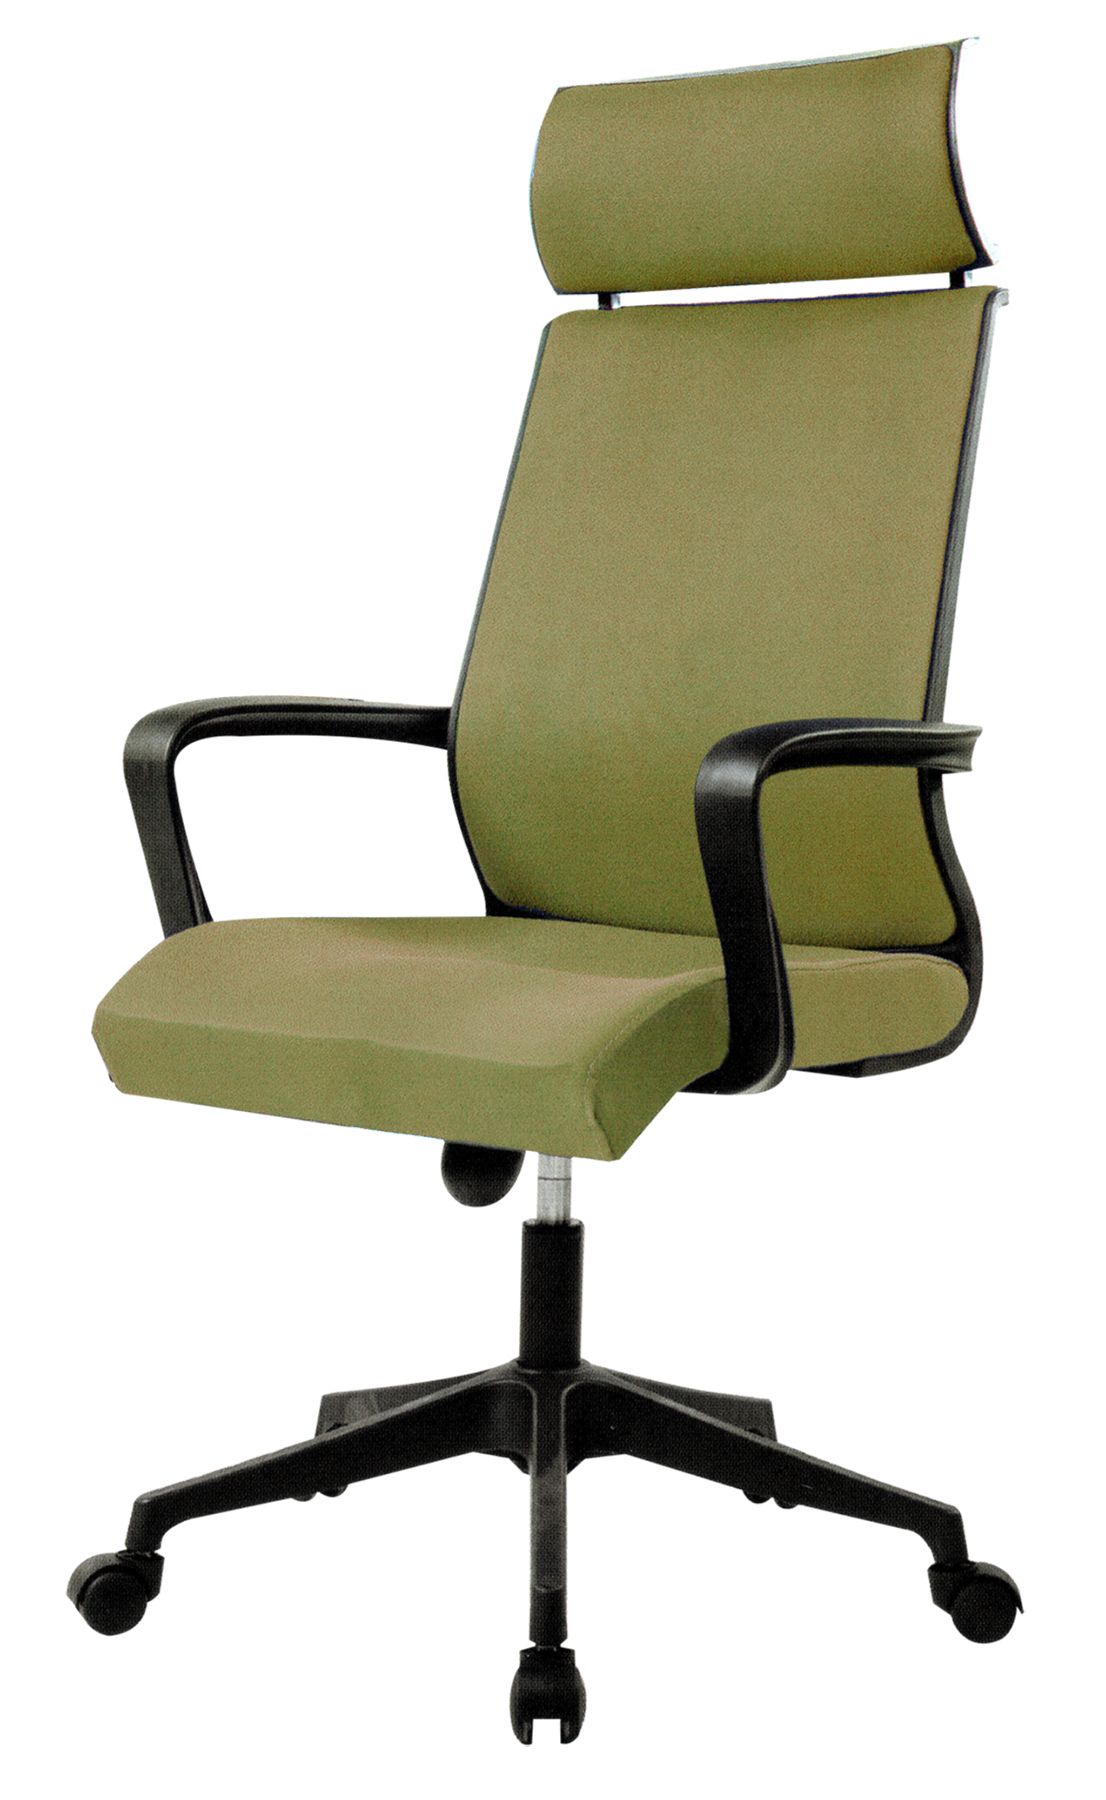 office chair 1601 green.jpg